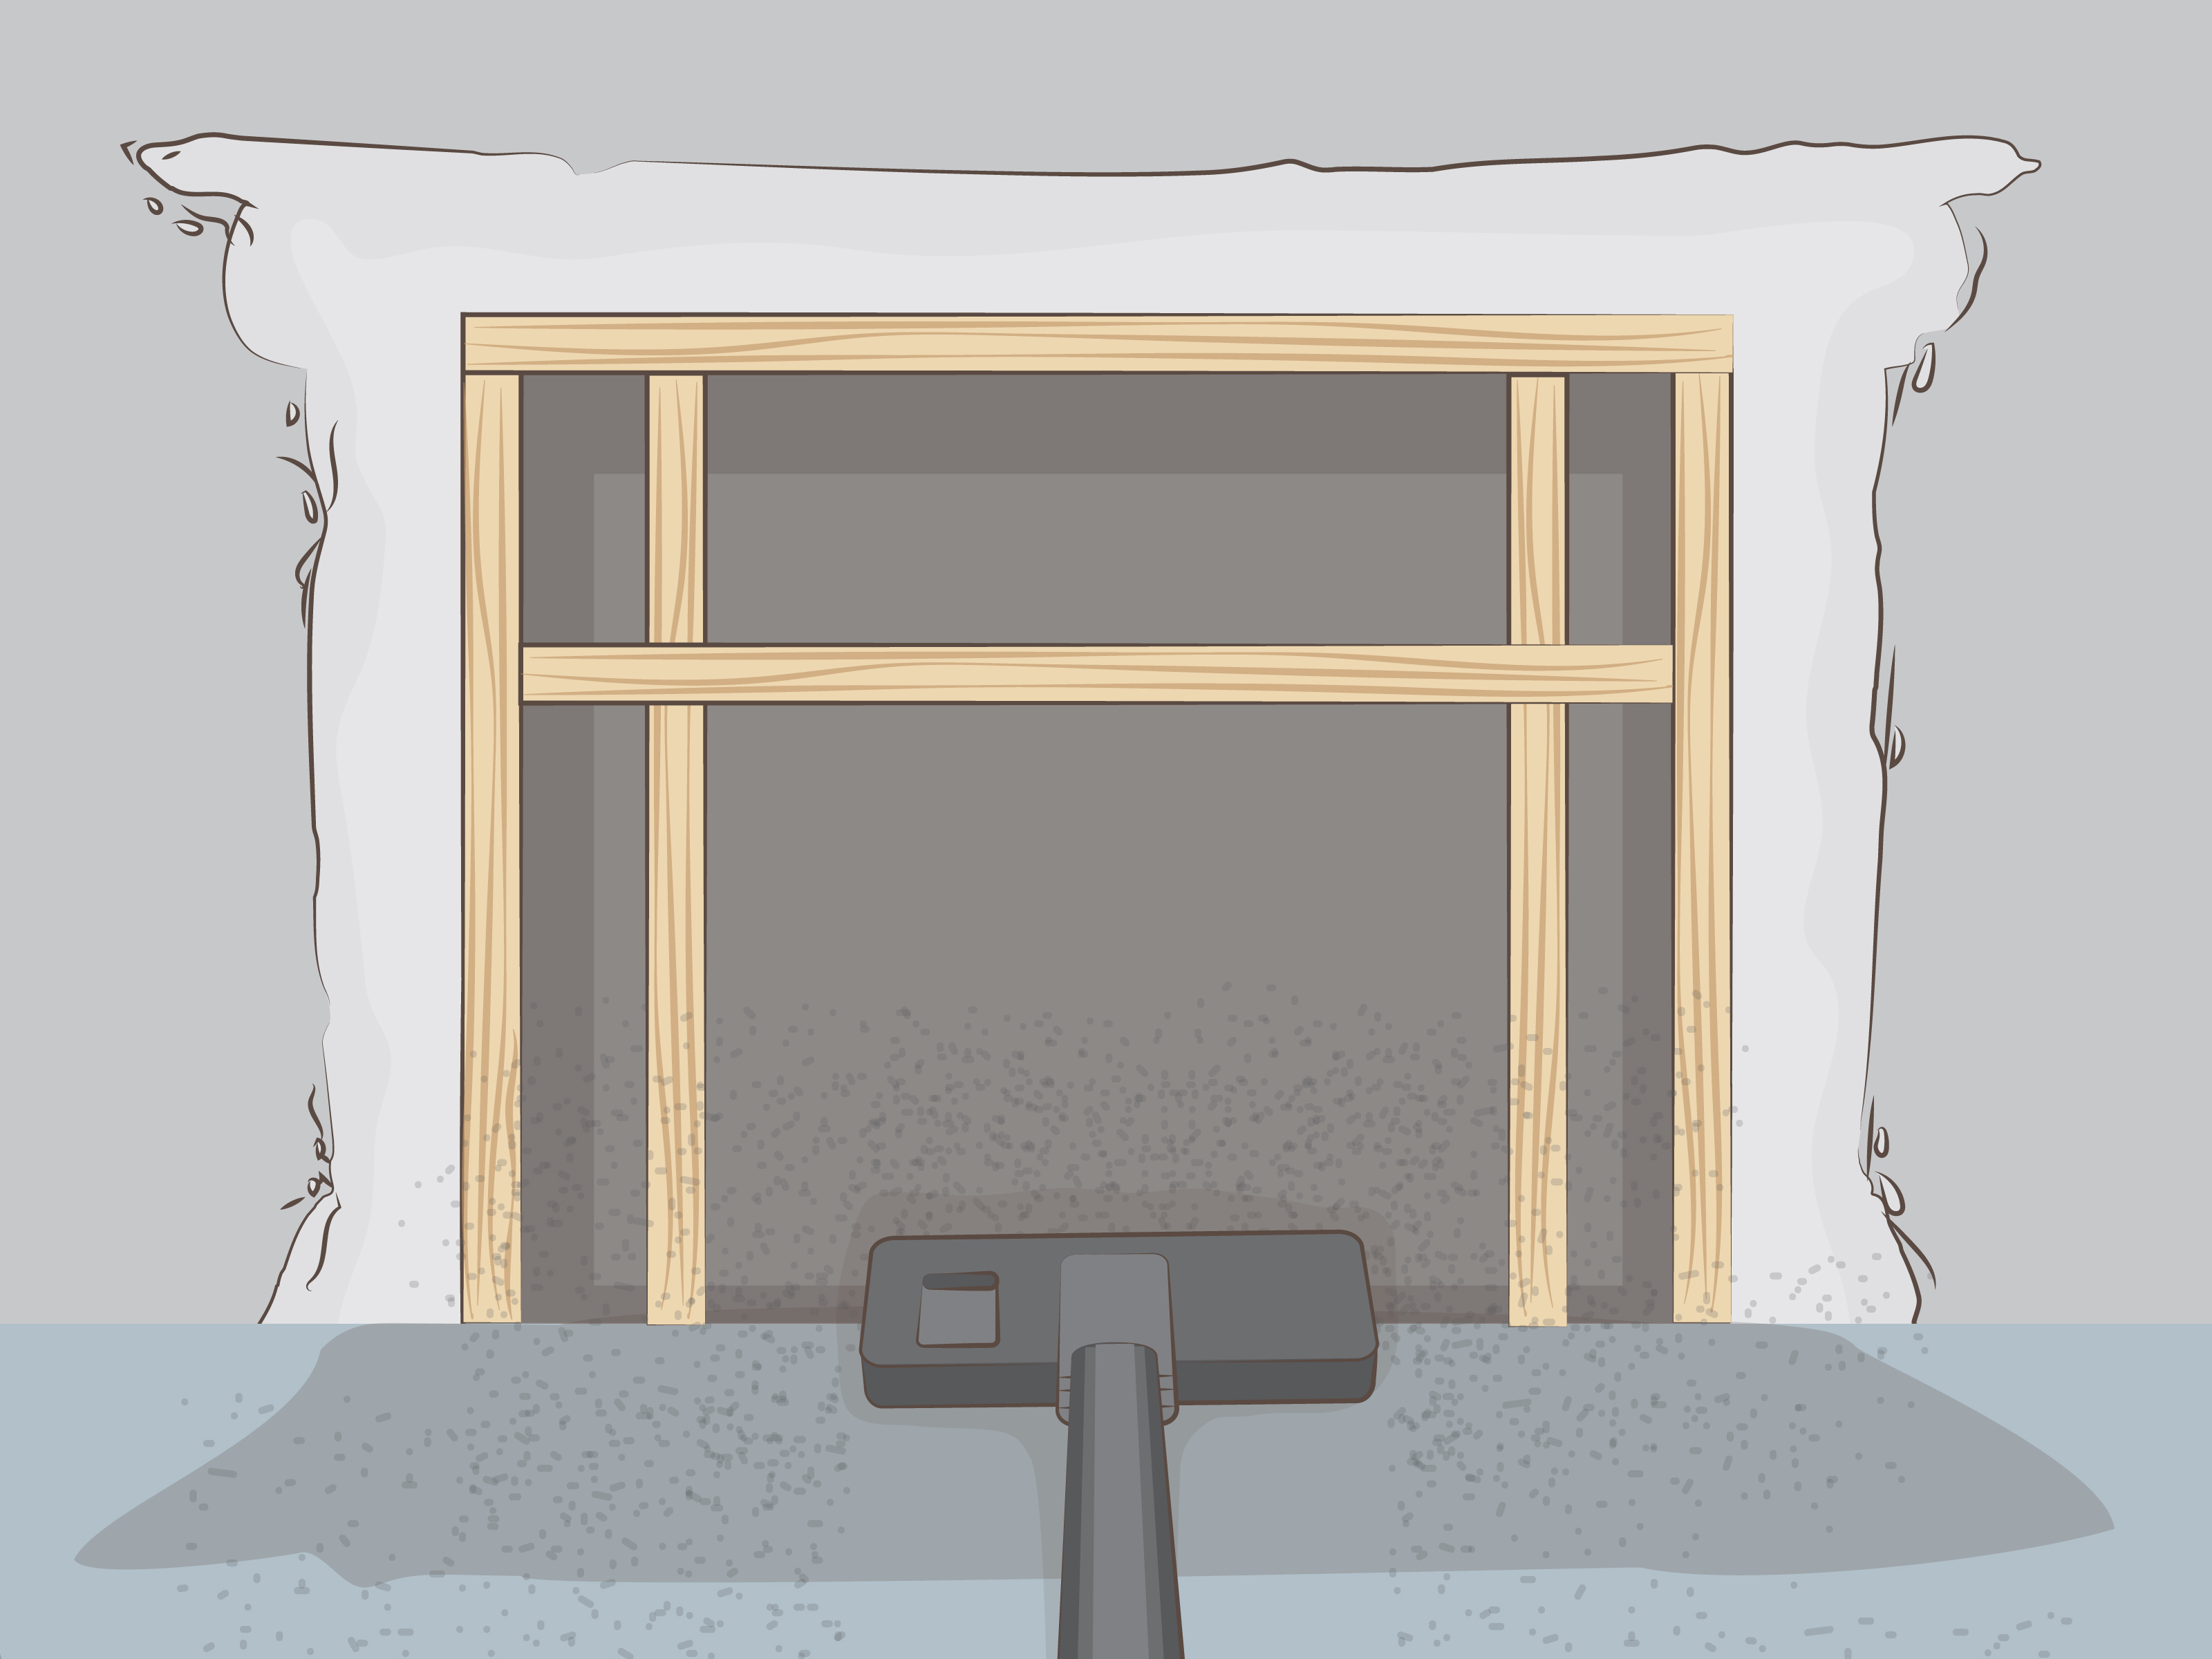 18 Fireplace Insert How To Remove A Fireplace Insert With Pictures Wikihow